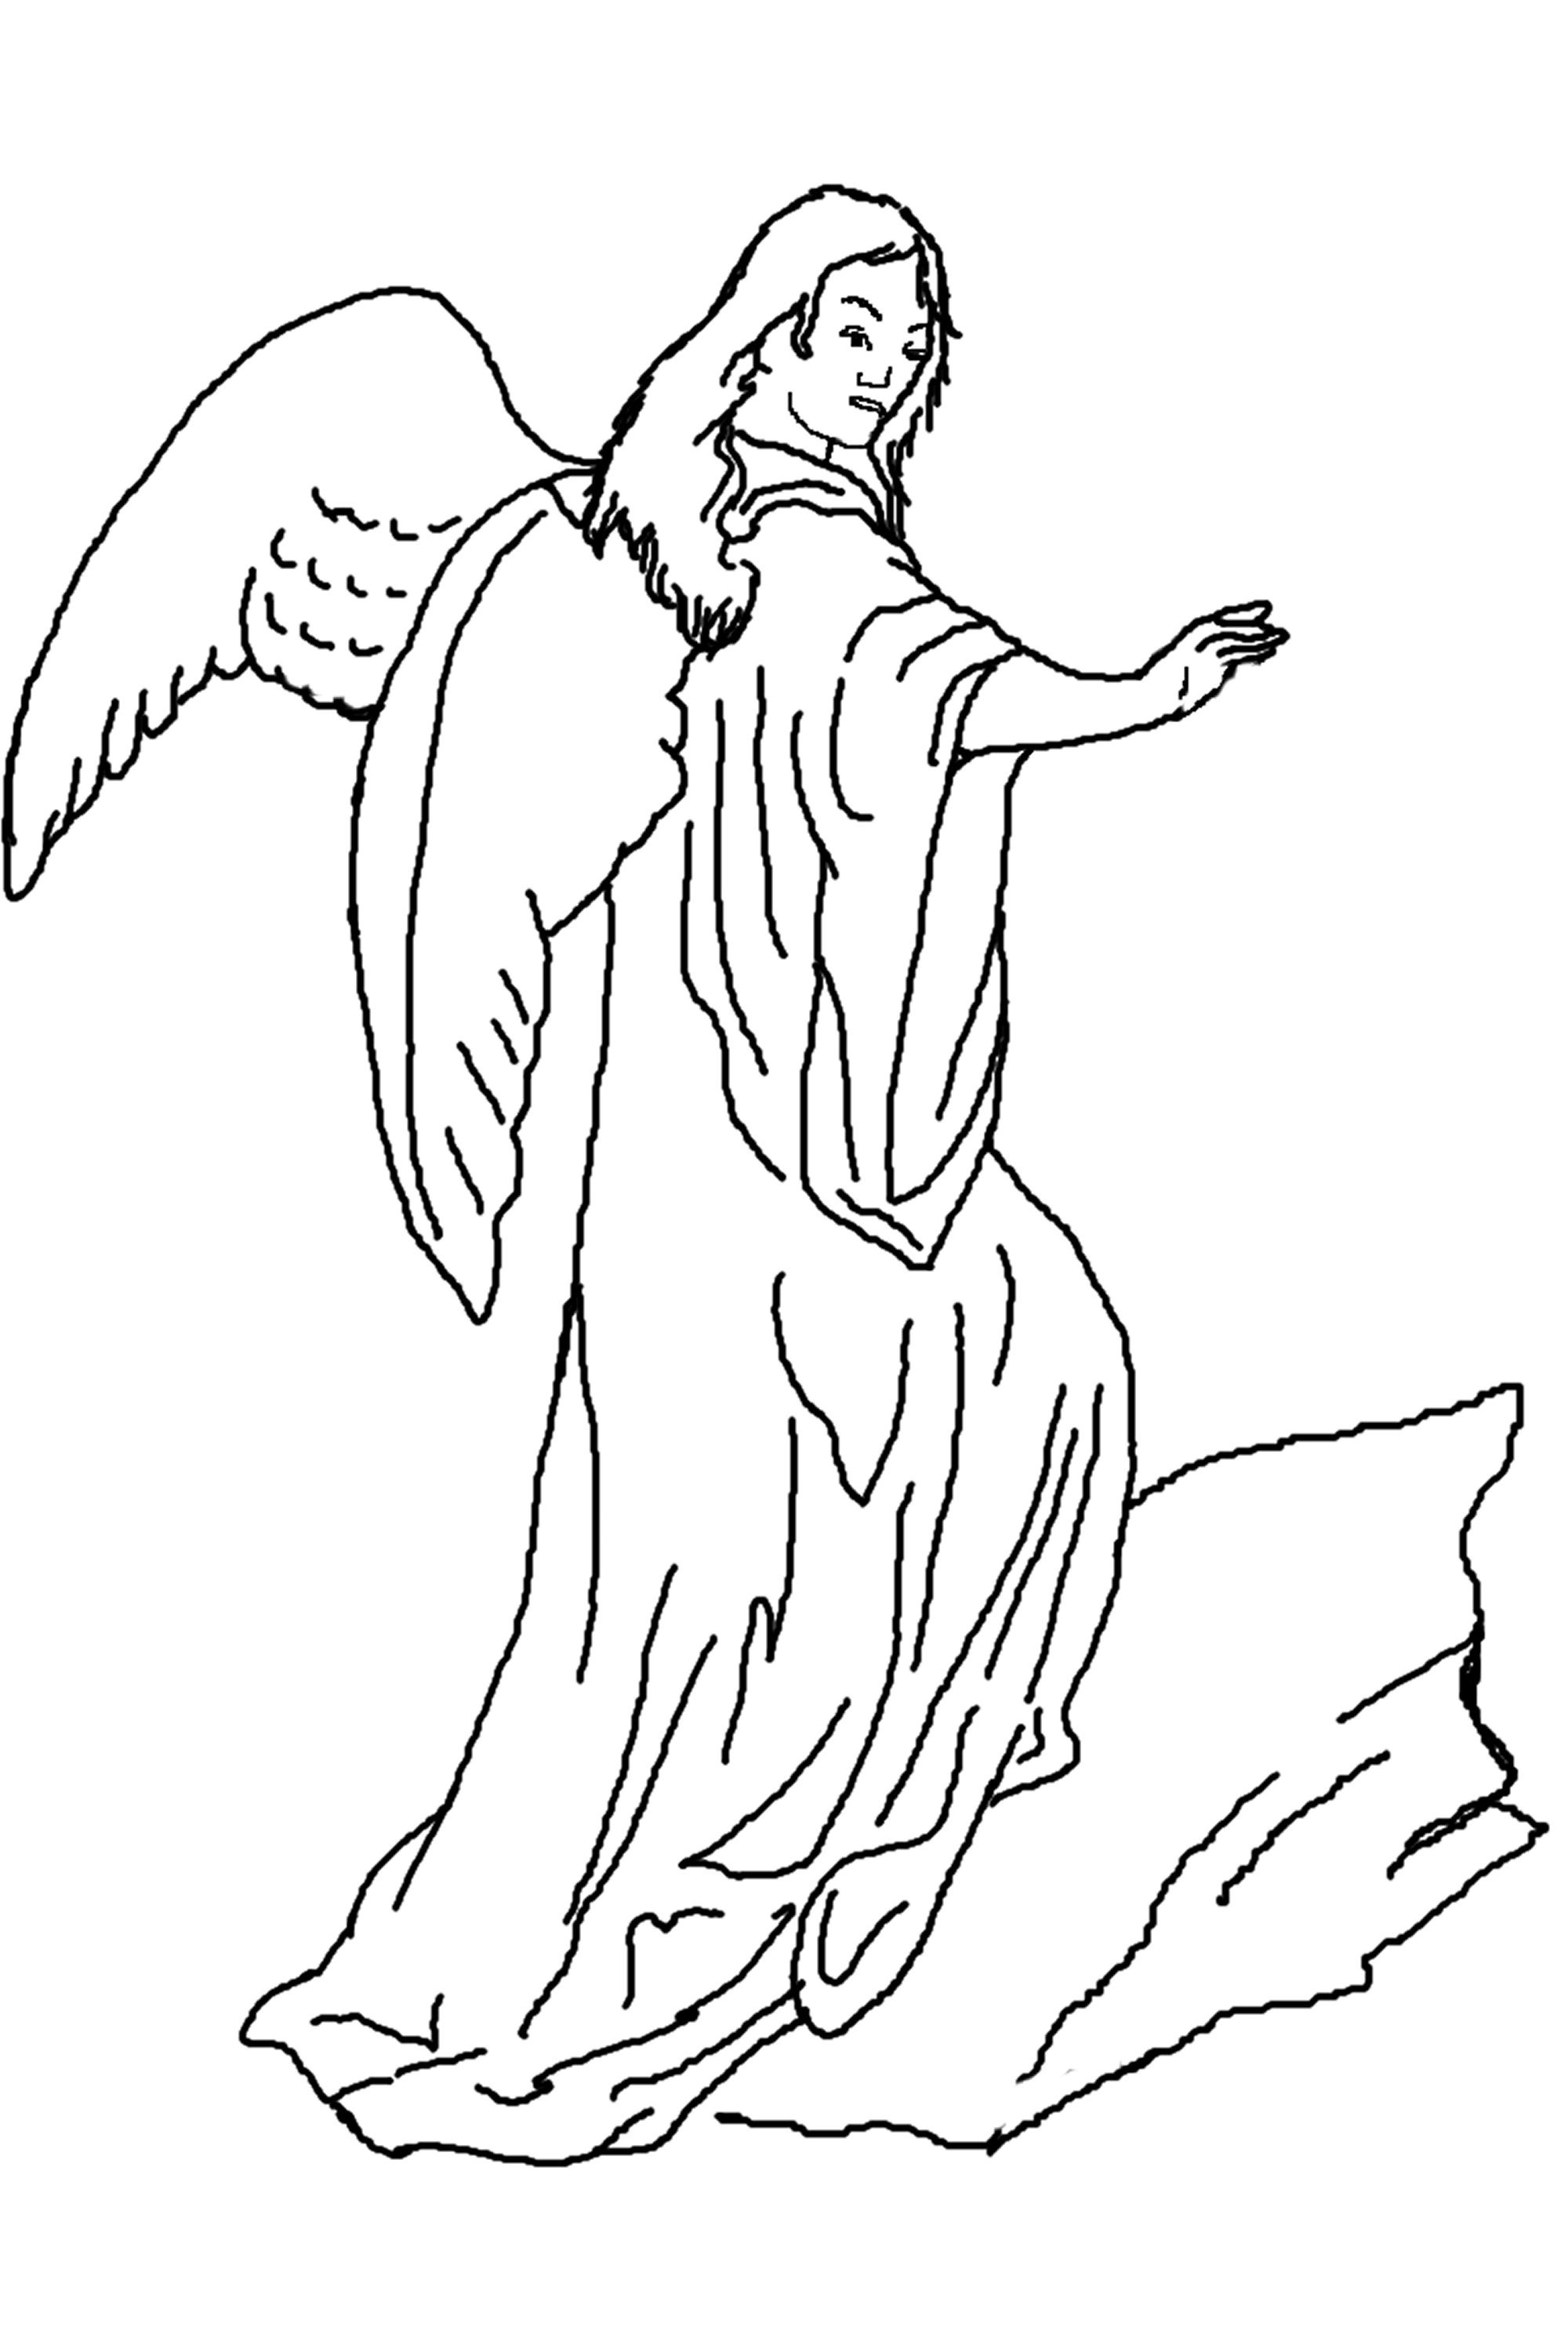 angel colouring free printable angel coloring pages for kids angel colouring